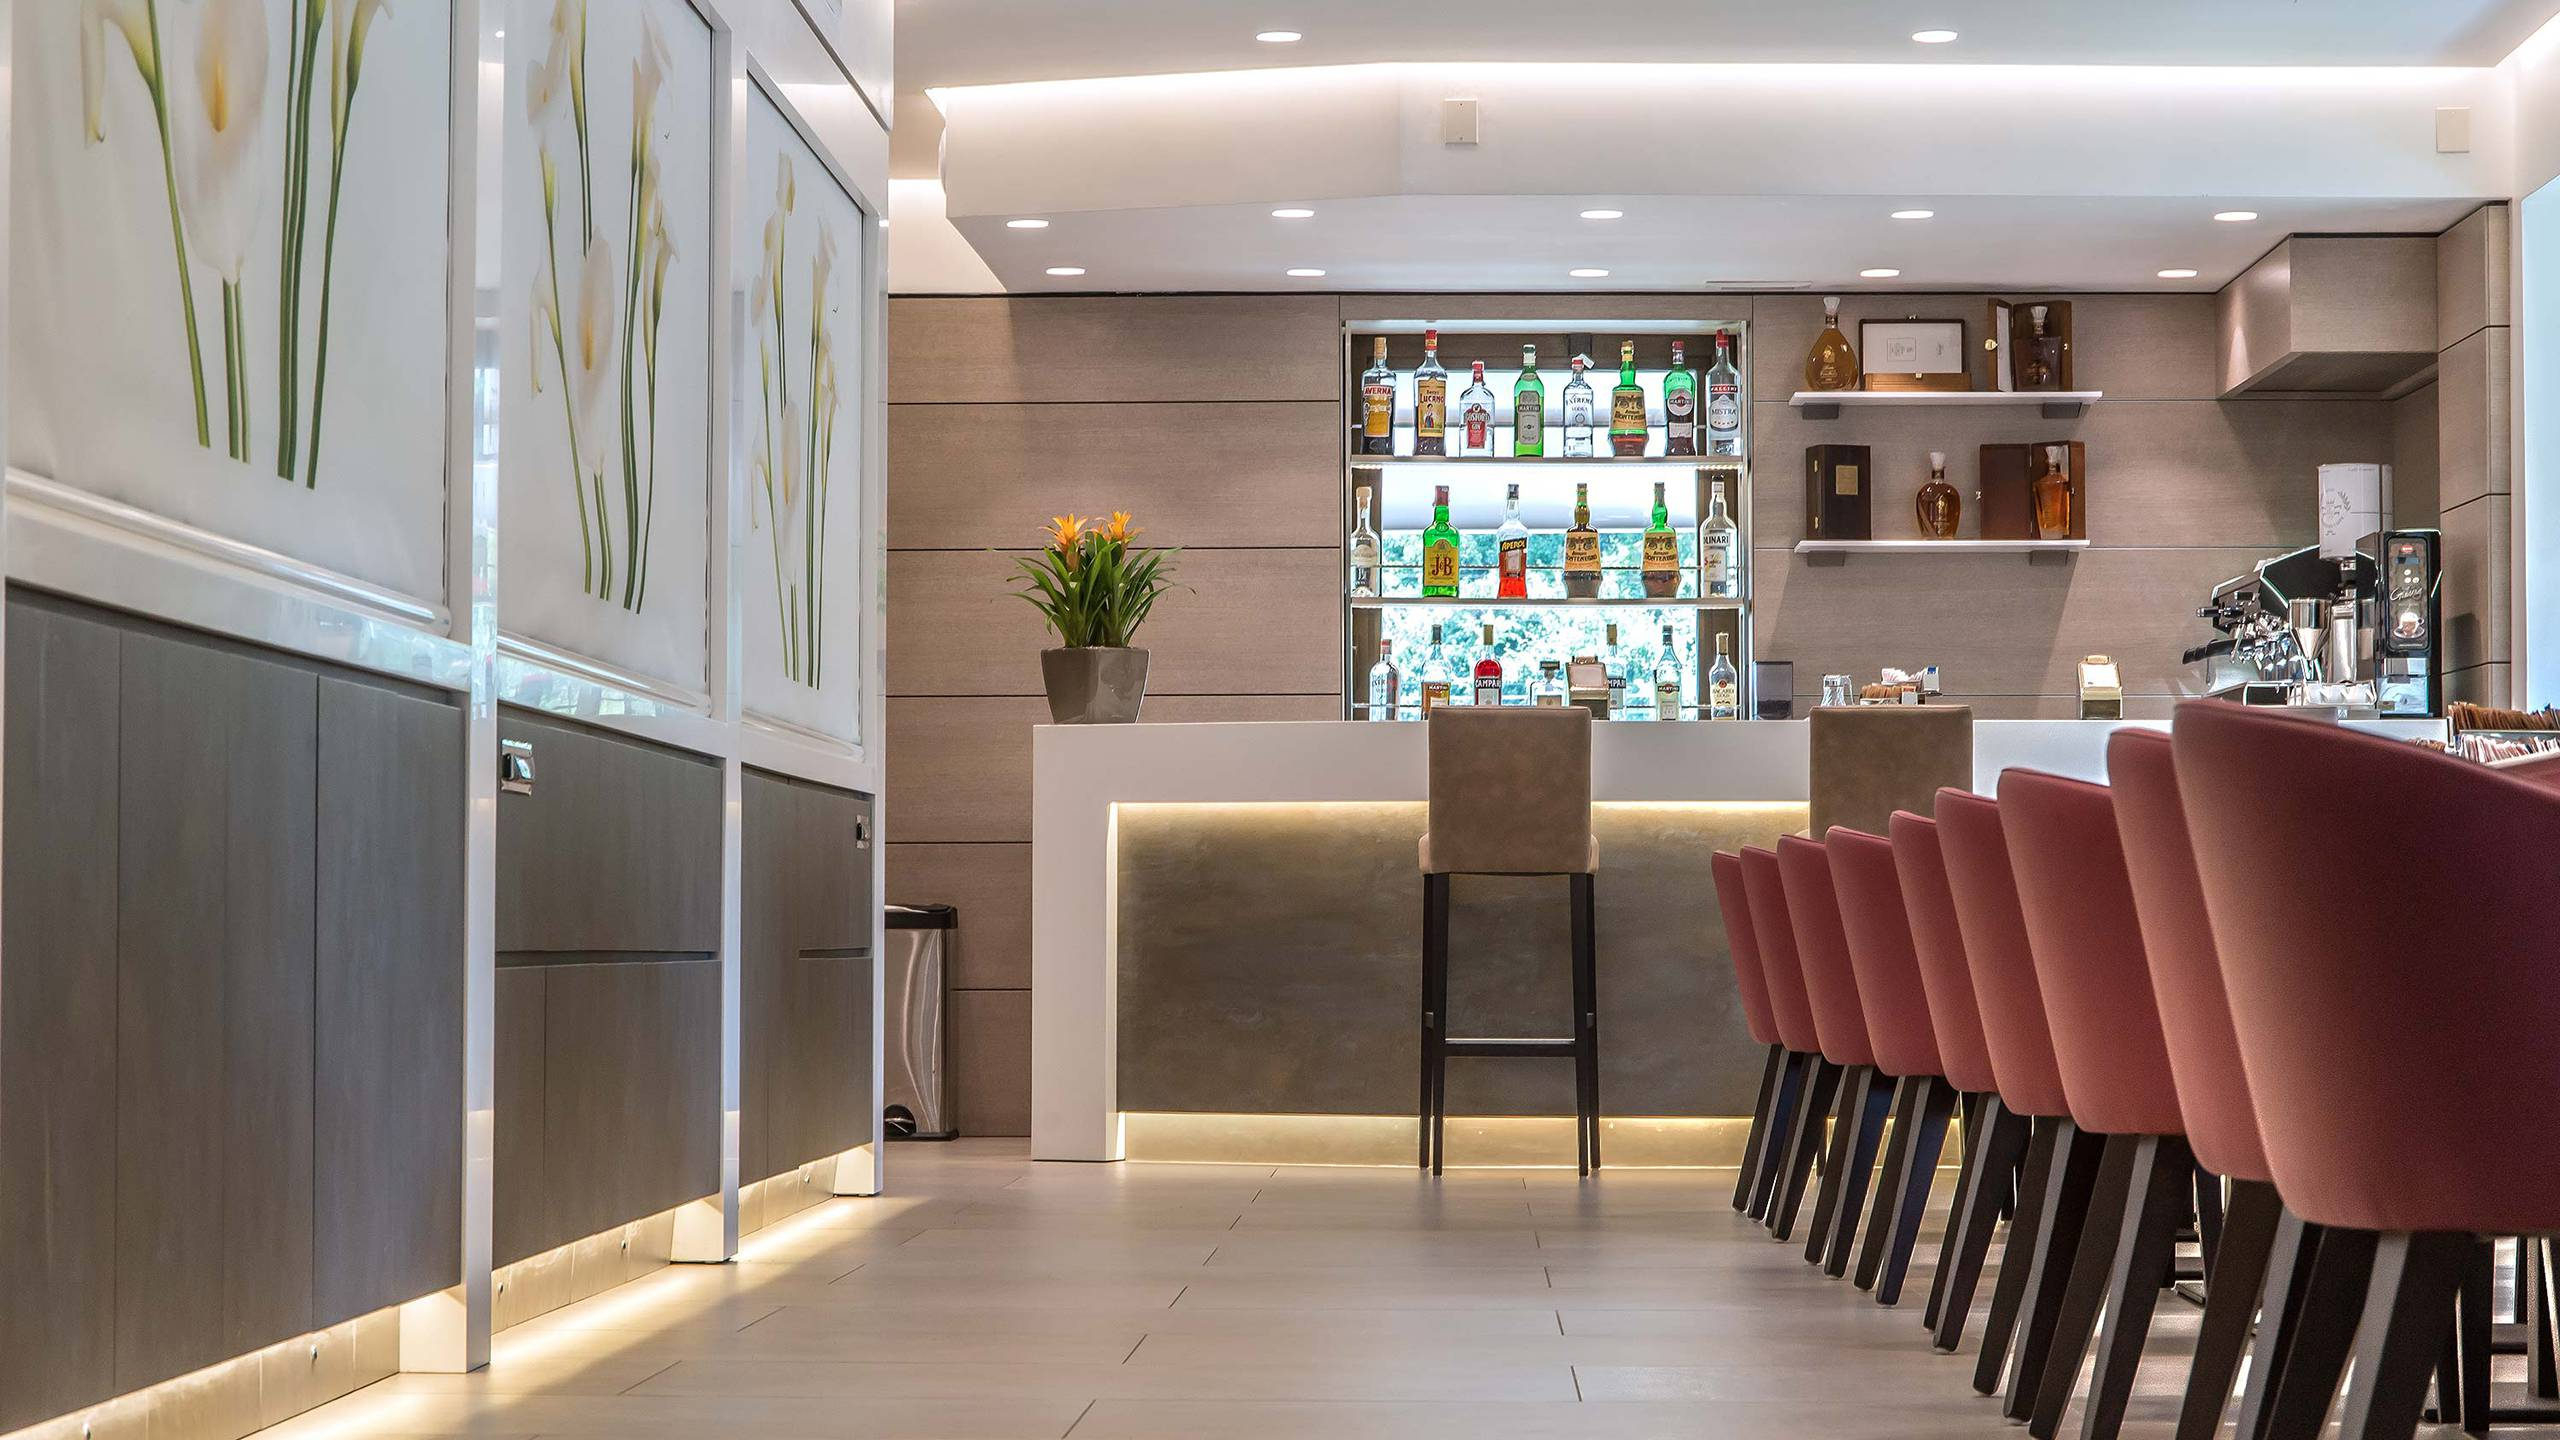 Hotel-La-Giocca-Roma-new-bar-counter-tables-2